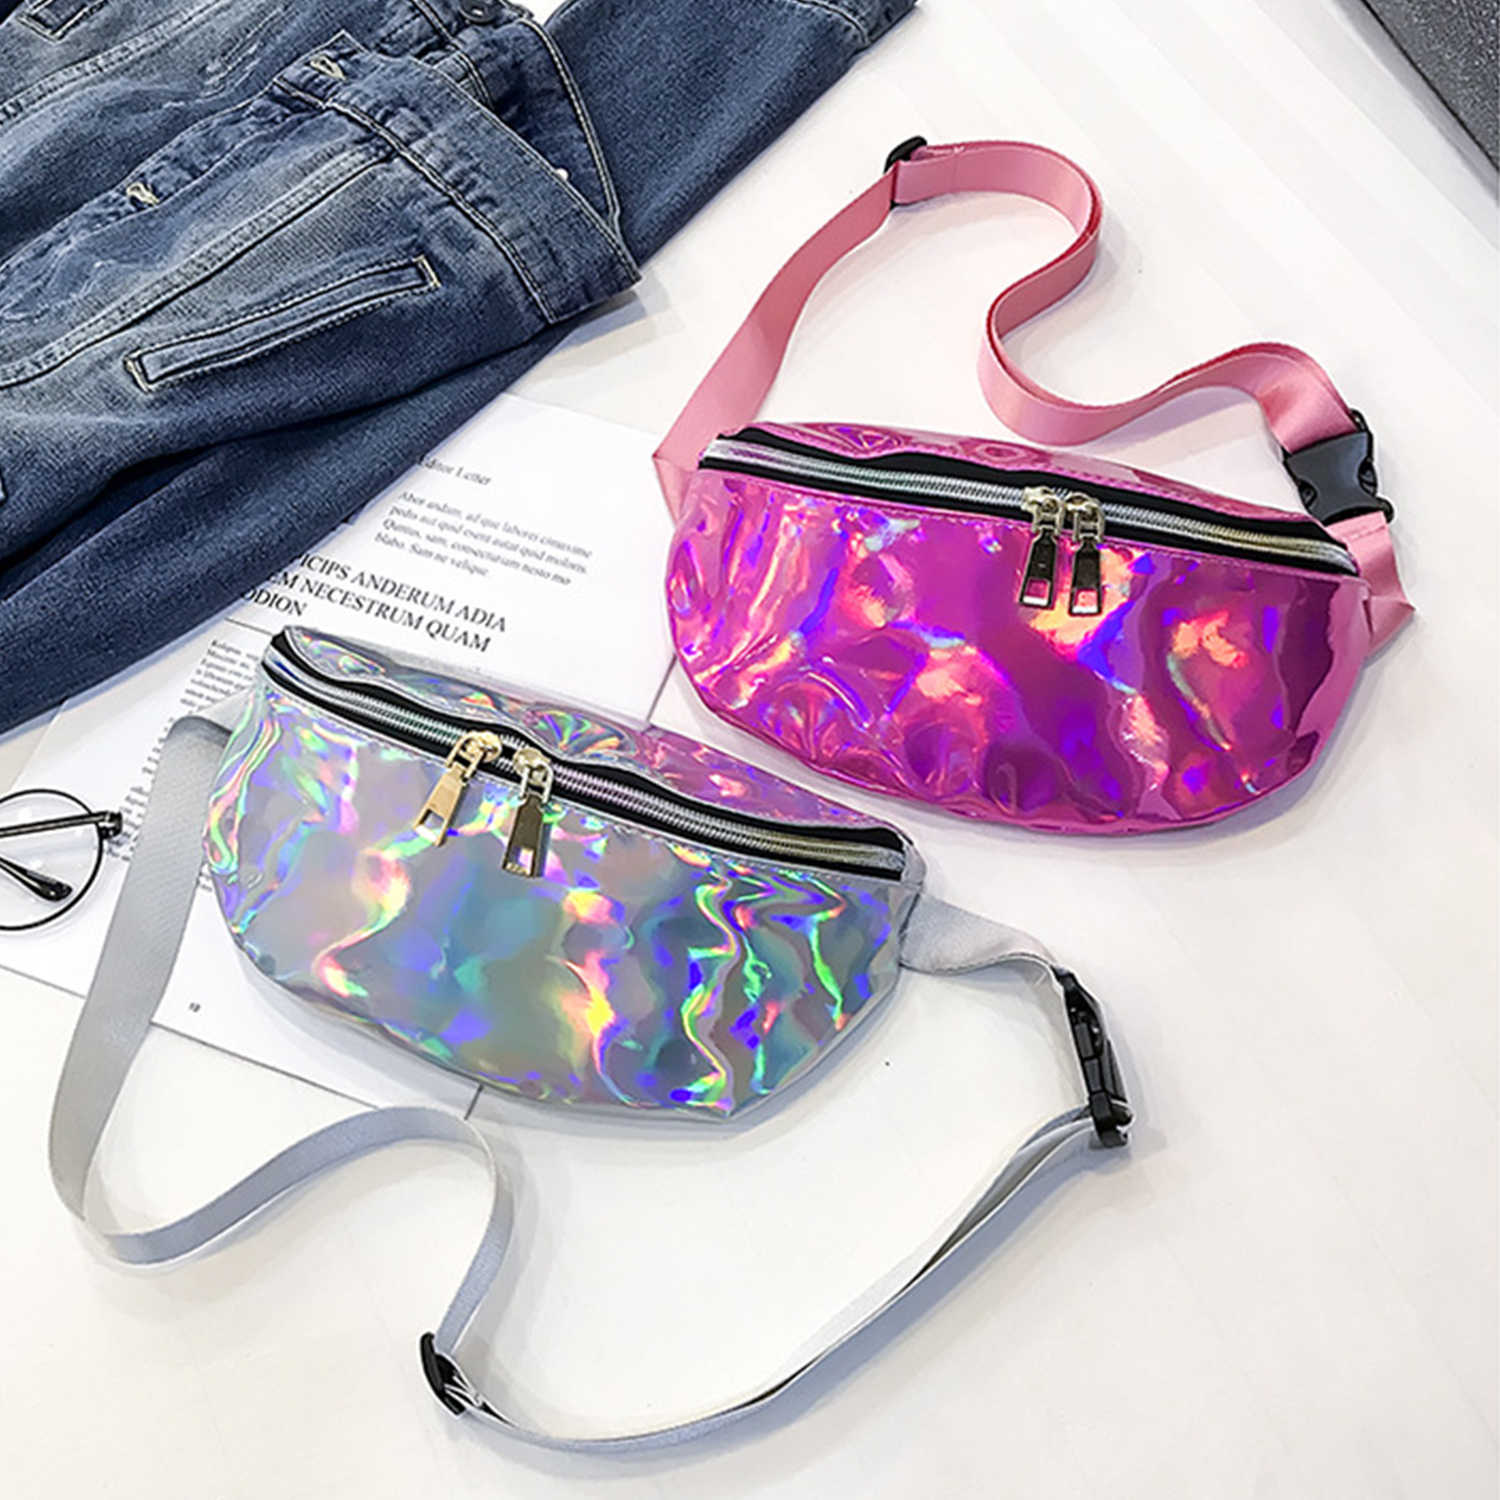 AELFRIC 2019 Hip Hop Vrouwen Pack Belt Bag Shiny Laser Hologram Taille Zakken Reizen Schoudertas Party Rave Hip Bum tas Streetwear